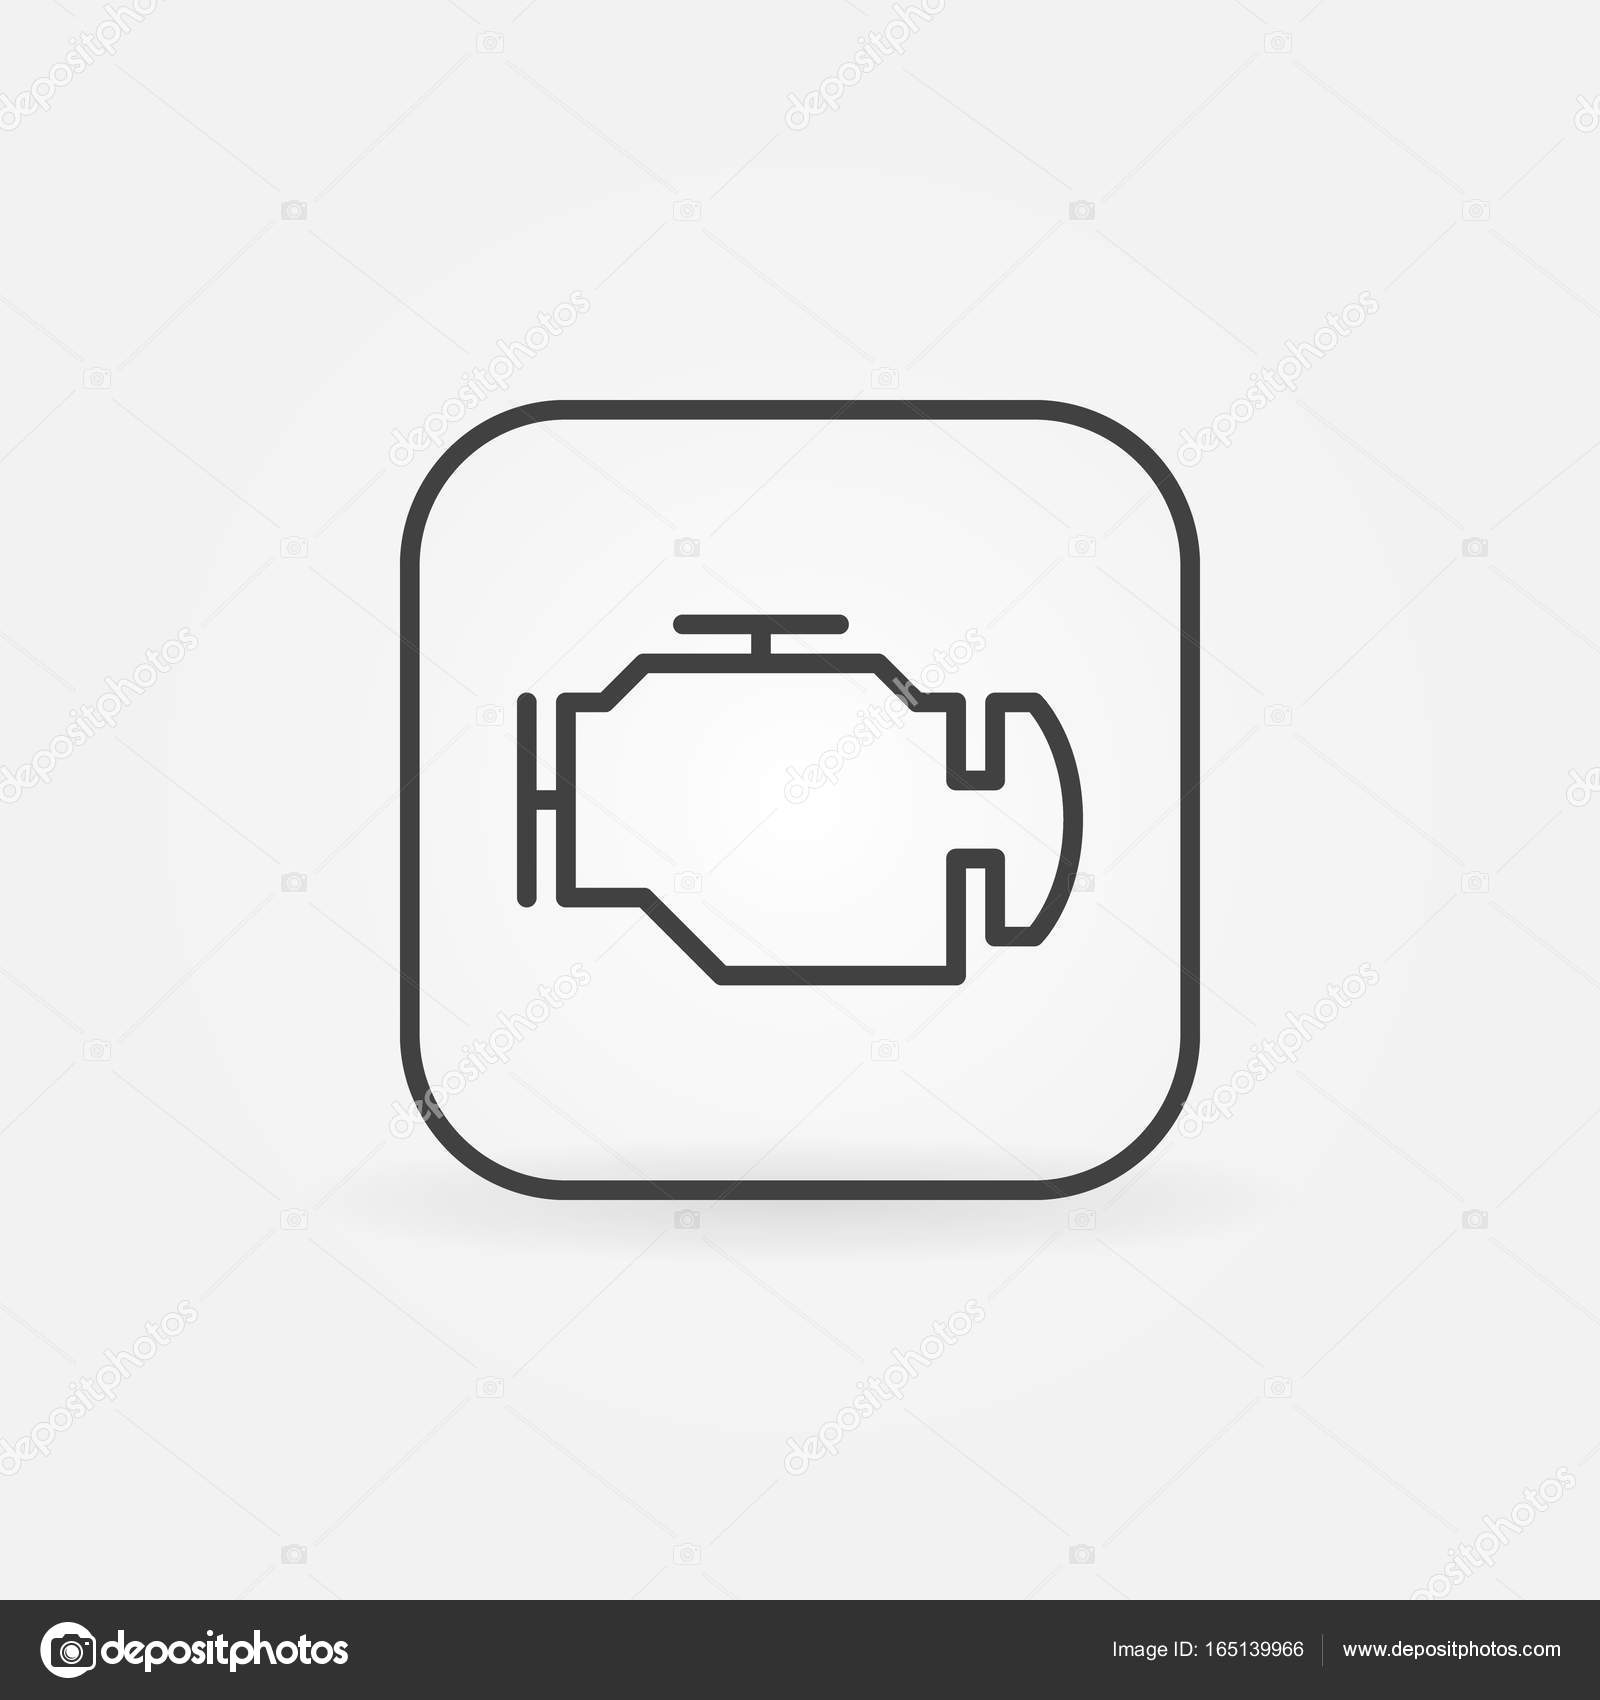 Check engine outline icon stock vector sn3g 165139966 check engine outline icon vector car diagnostic concept symbol in thin line style vector by sn3g biocorpaavc Gallery